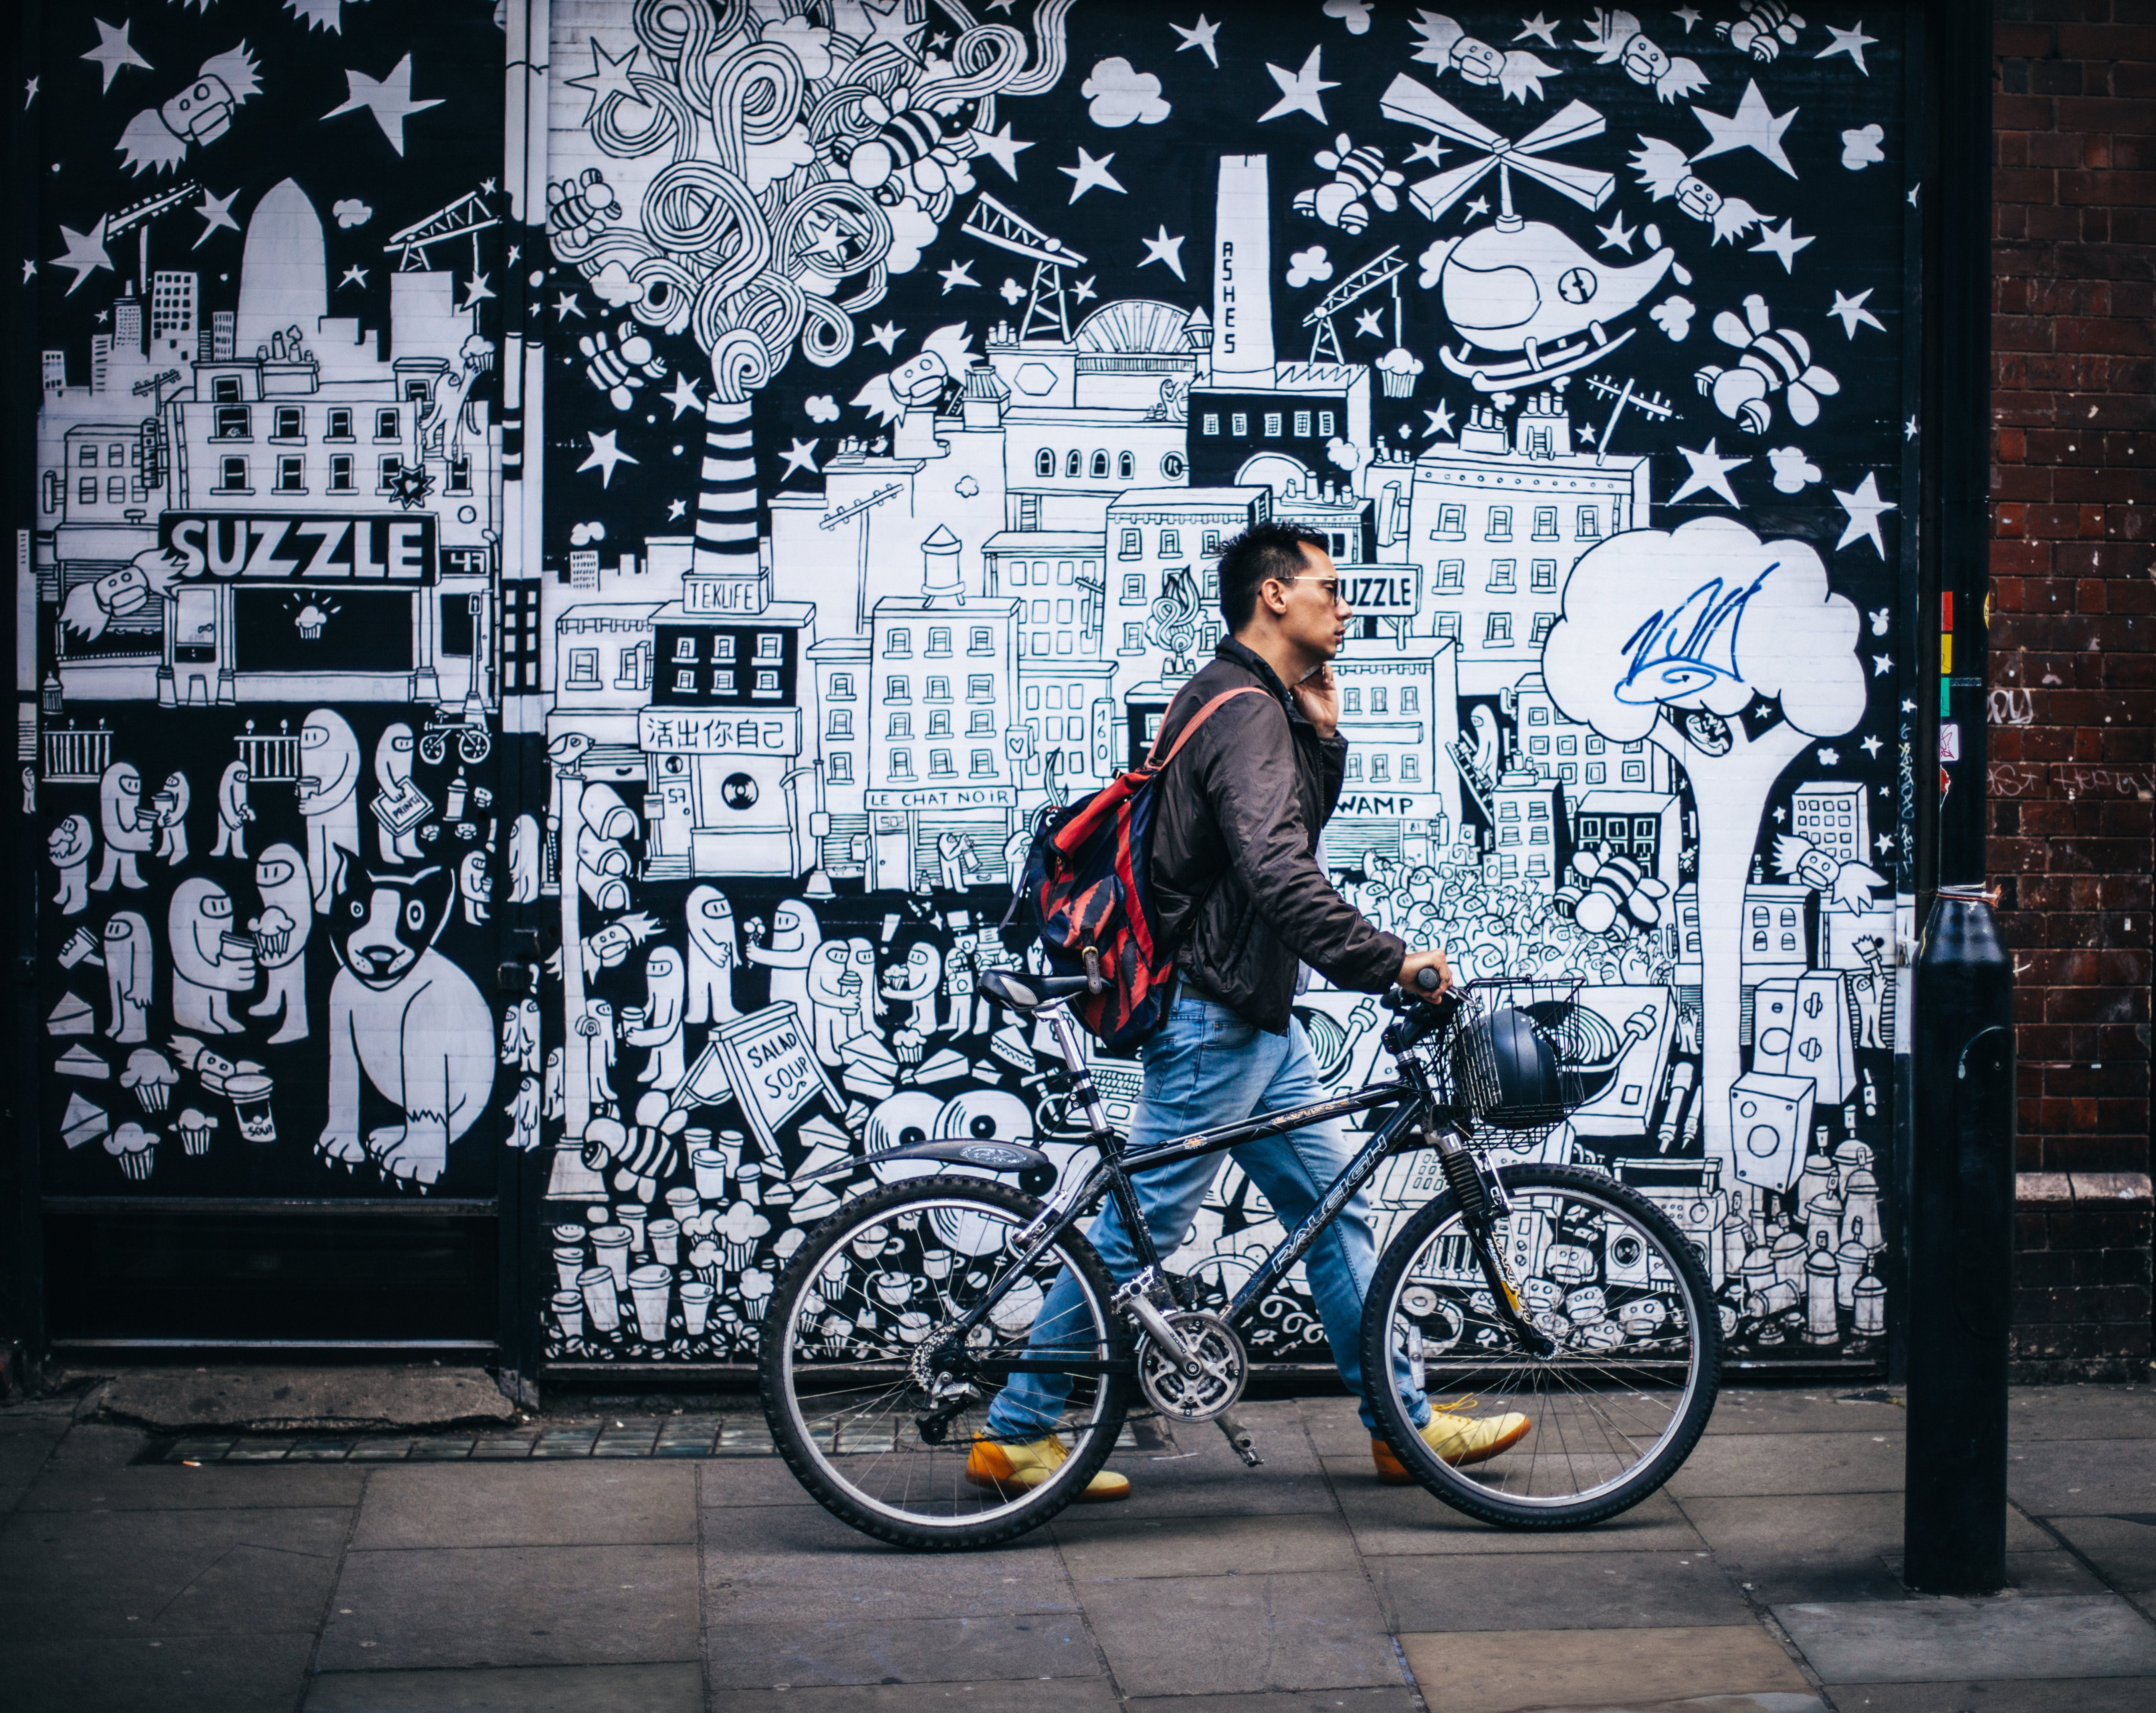 Man in Black Jacket Holding a Black Hardtail Bike Near Black and White Art Wall